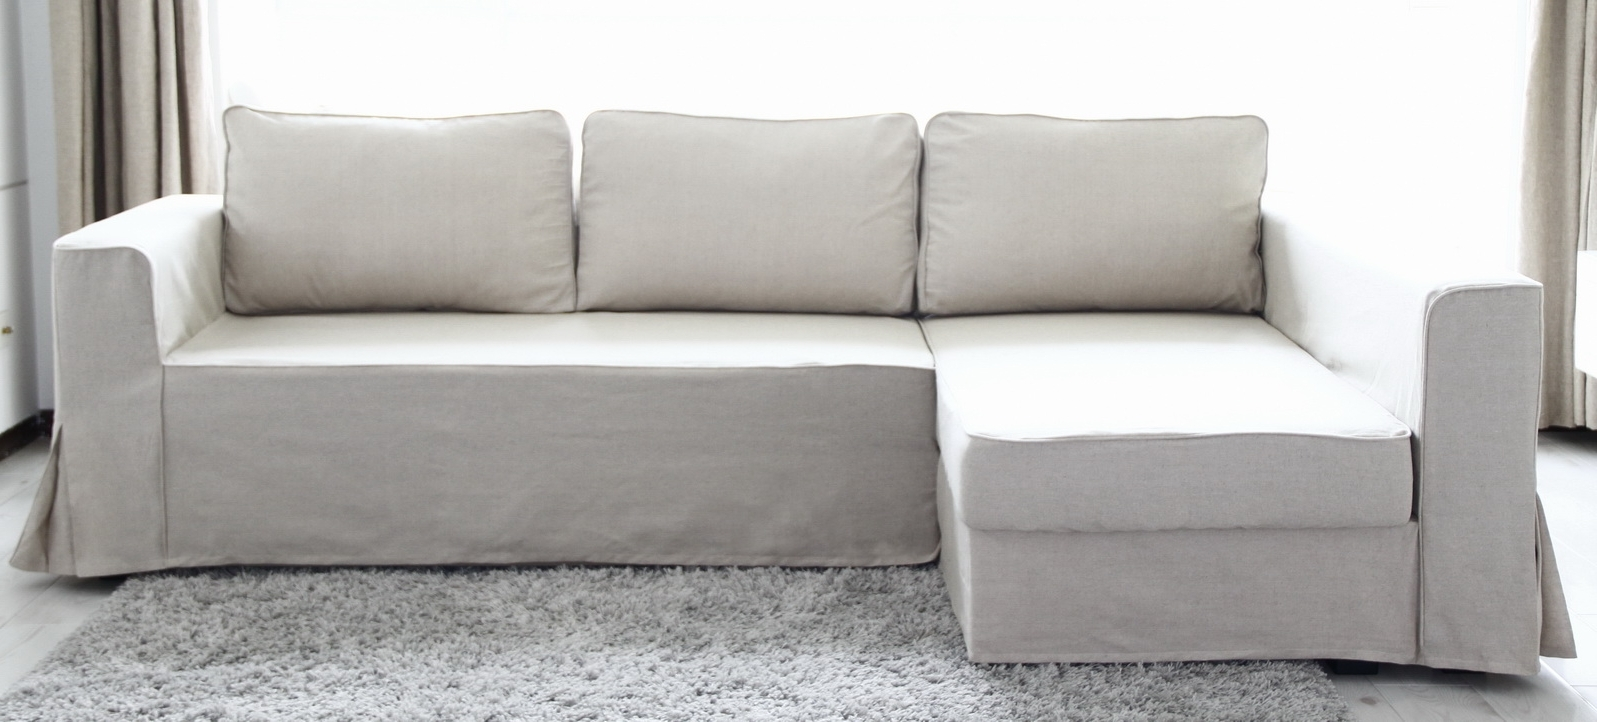 2017 Loose Fit Linen Manstad Sofa Slipcovers Now Available In Manstad Sofas (View 1 of 15)